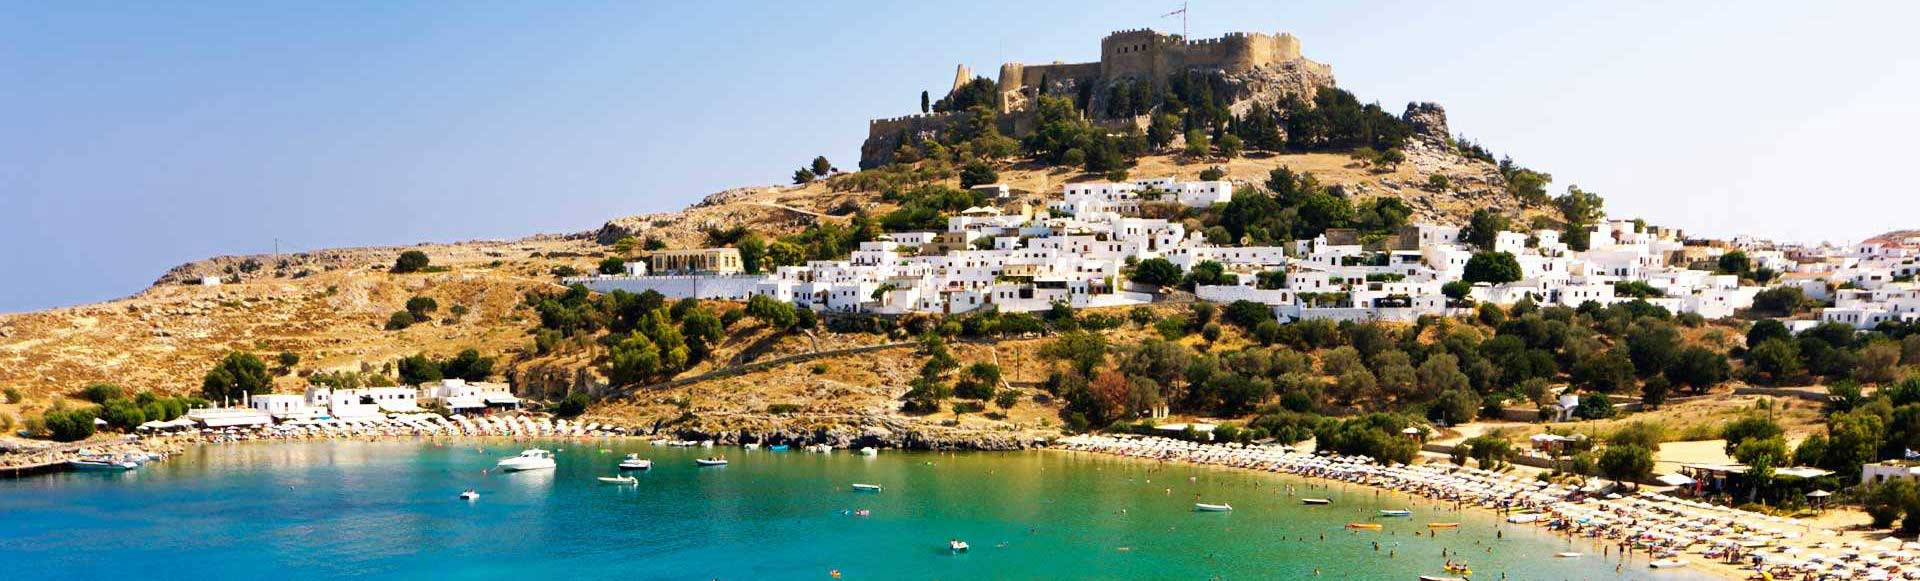 Dodecanese Islands, Greece